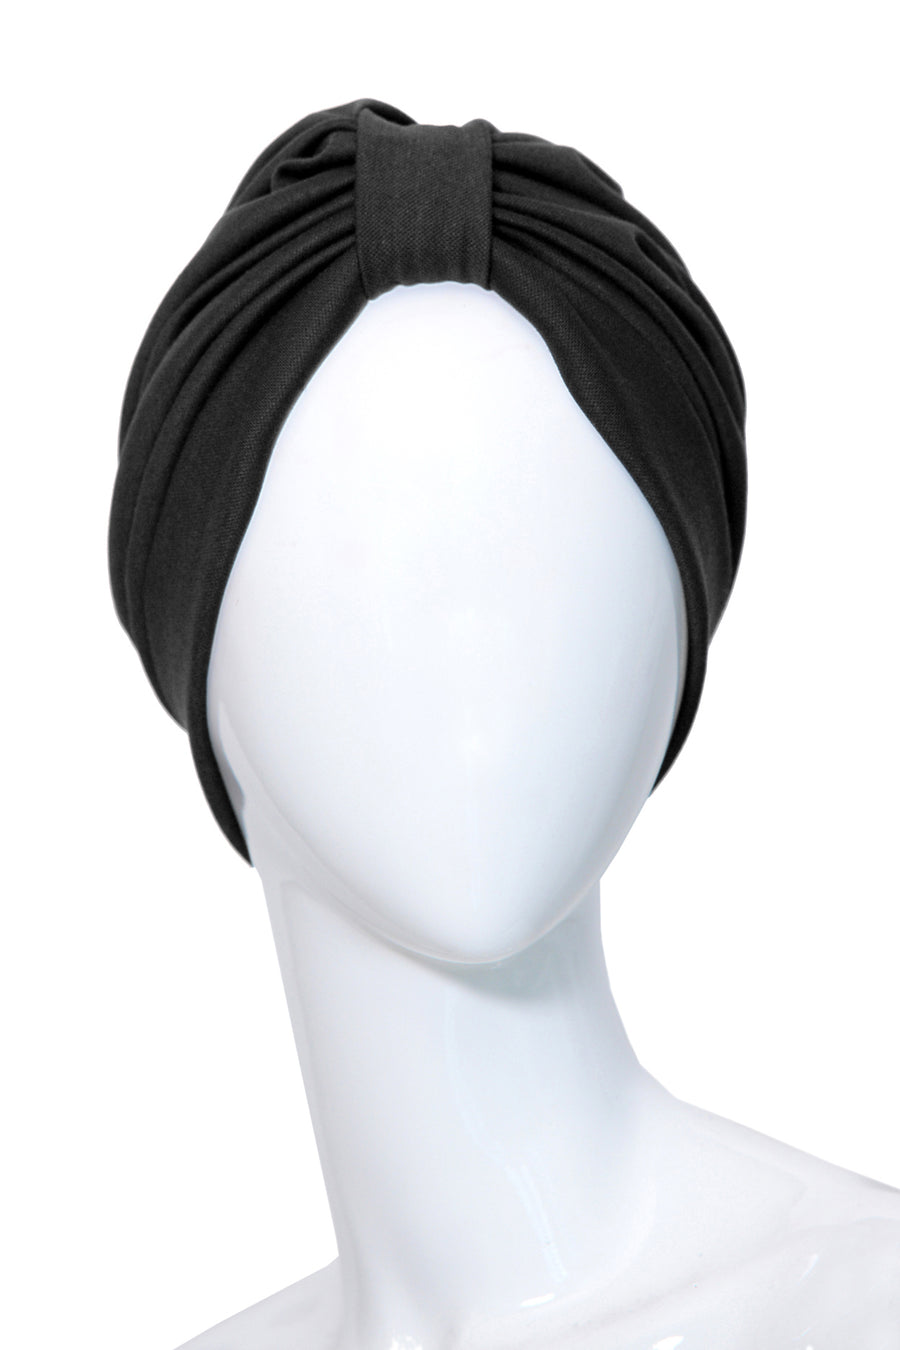 BOISSIERE Black Fashion Turbans